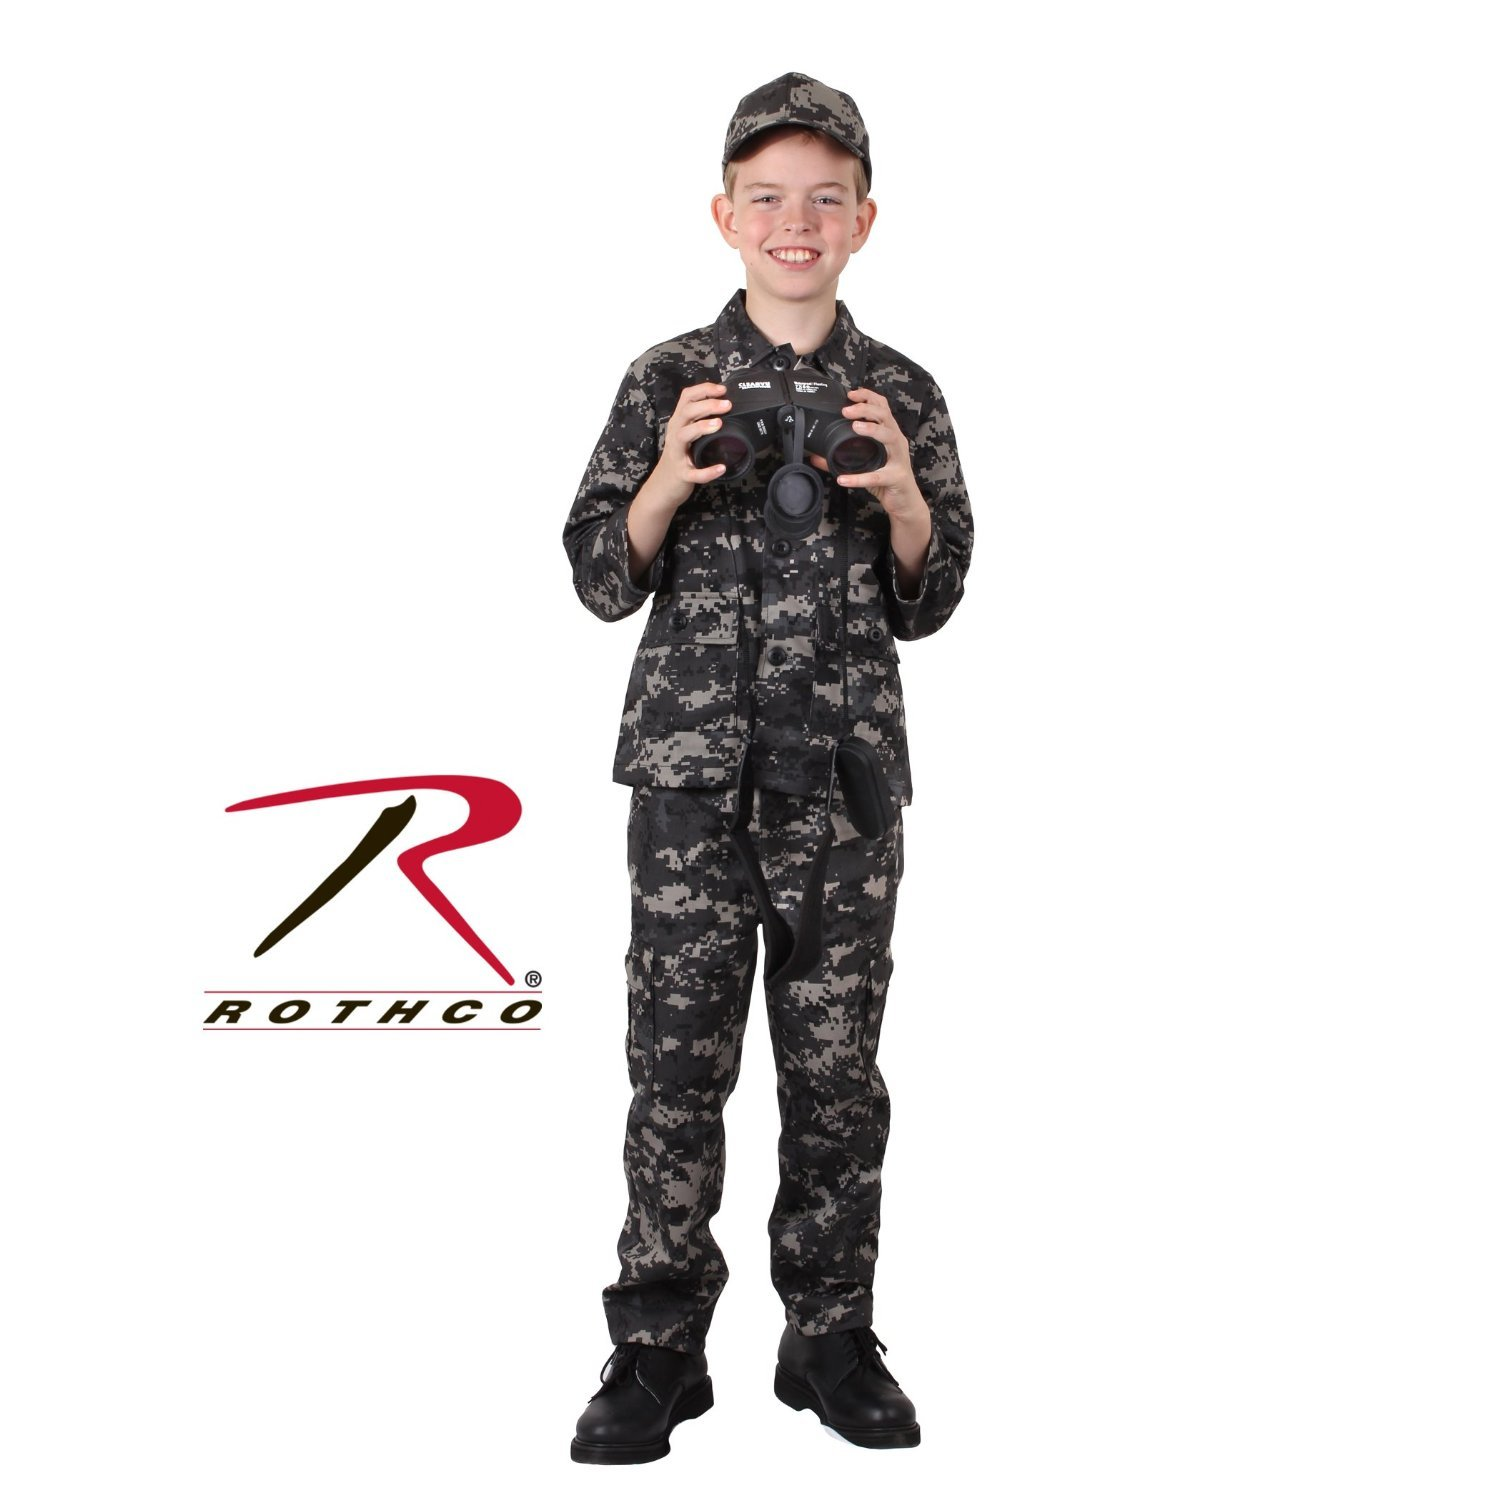 6-8 Small Rothco Kids BDU Pants Subdued Urban Digital Camo